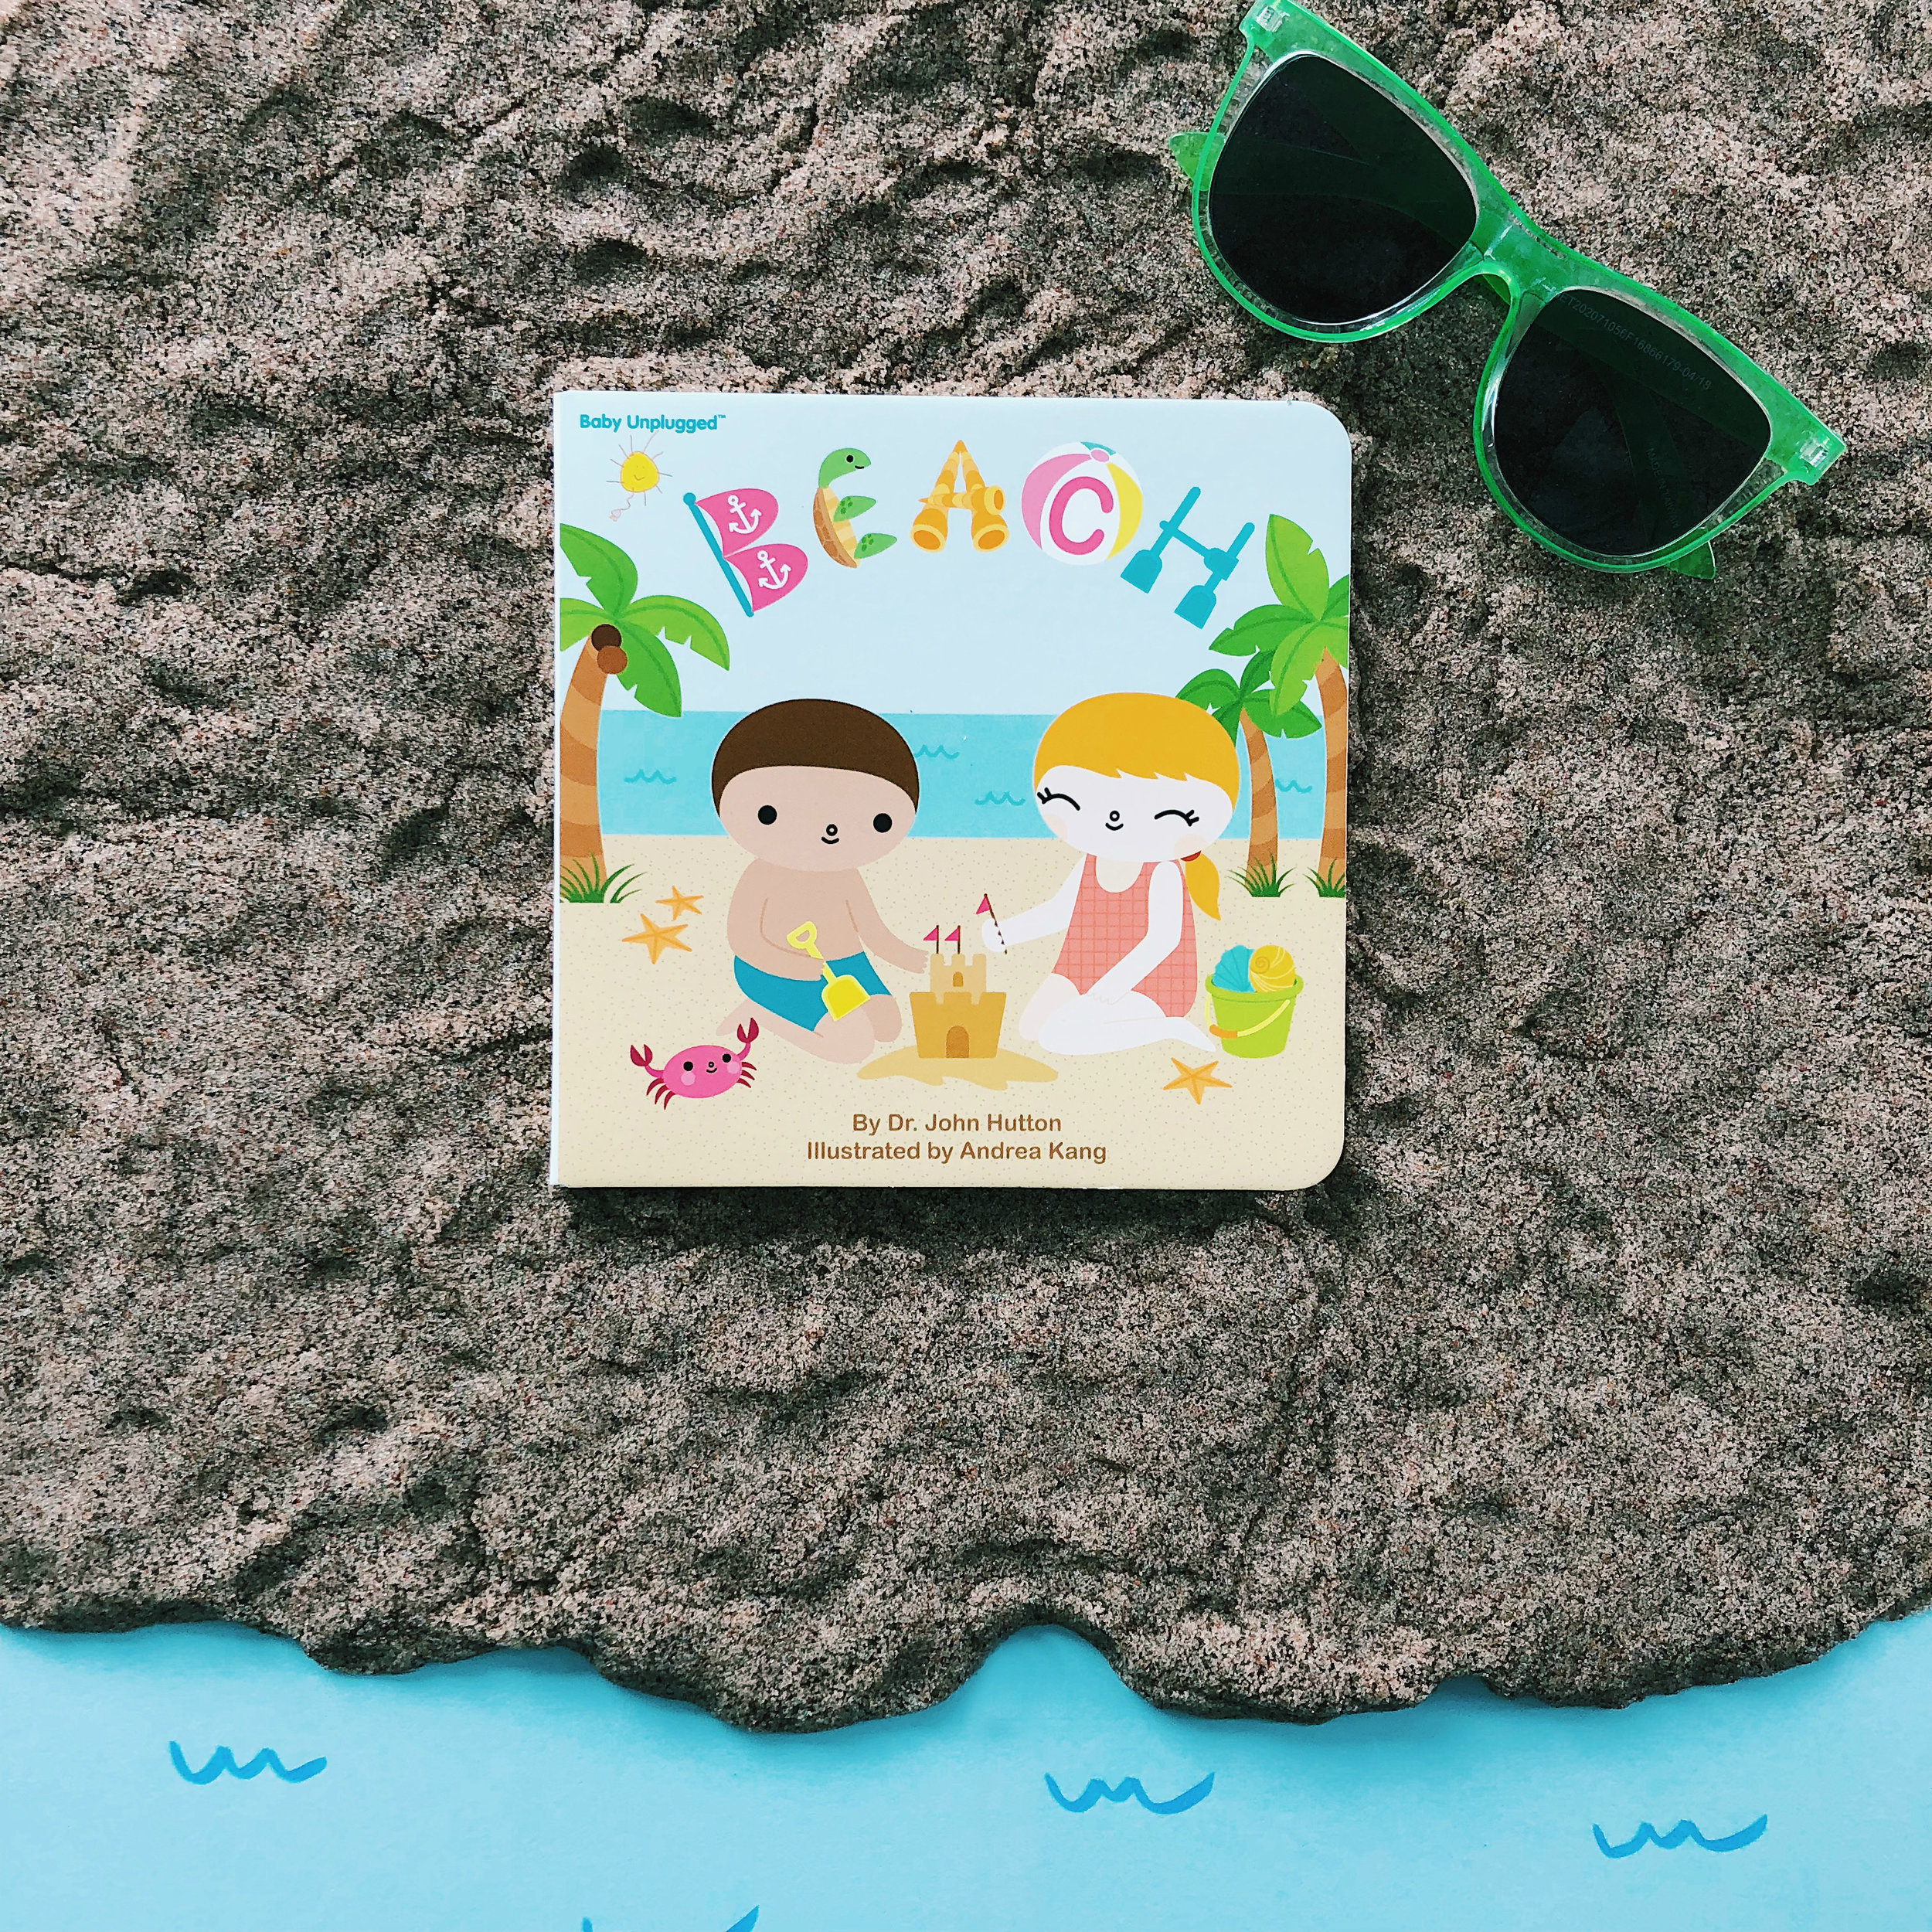 Why not read   Beach     while you're at the beach?